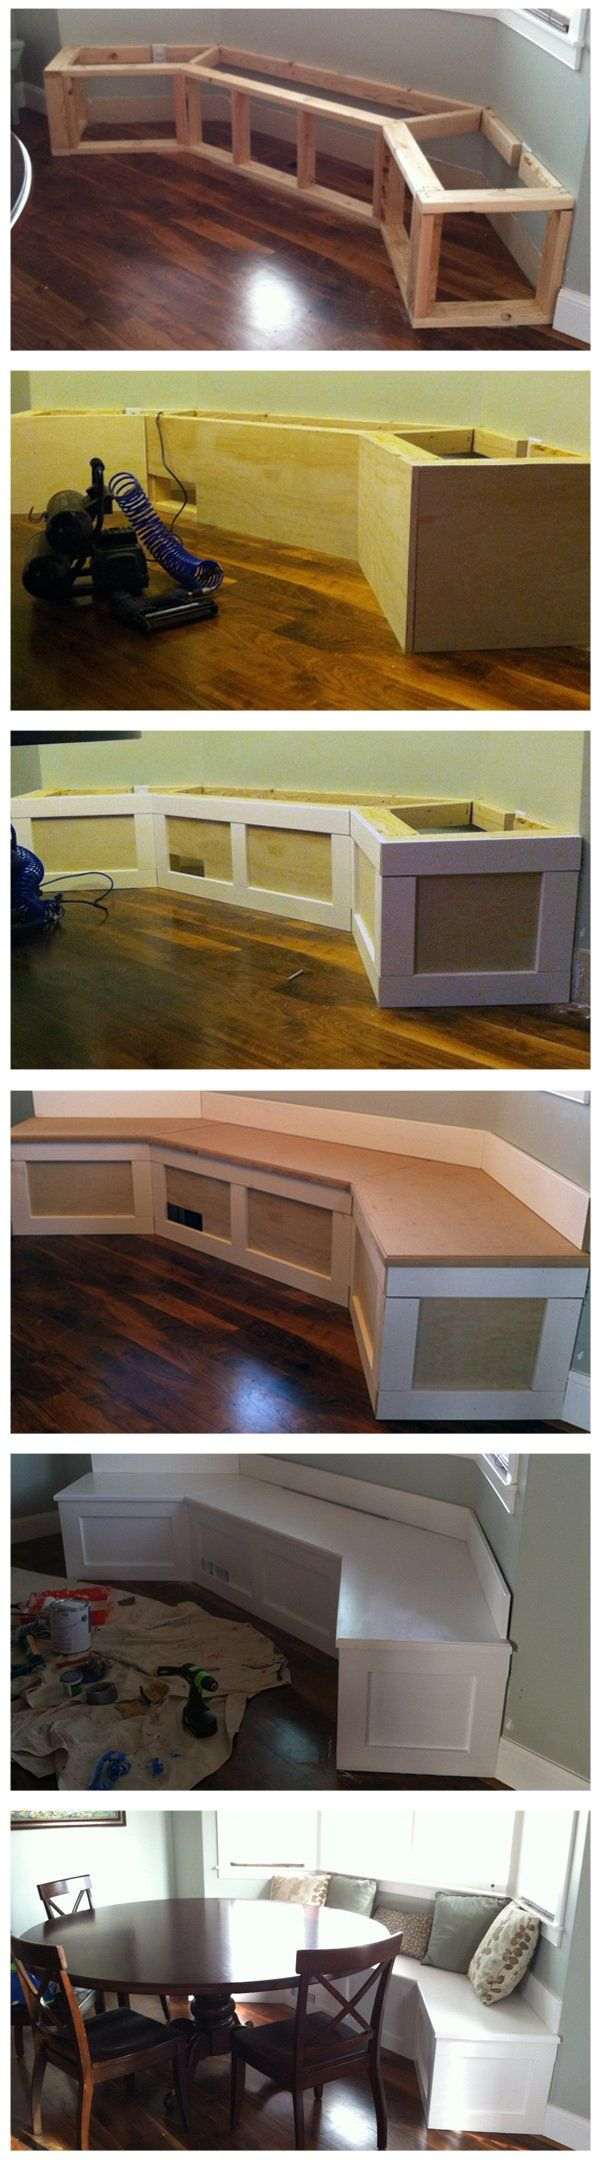 DIY - How to Build a Kitchen Bench